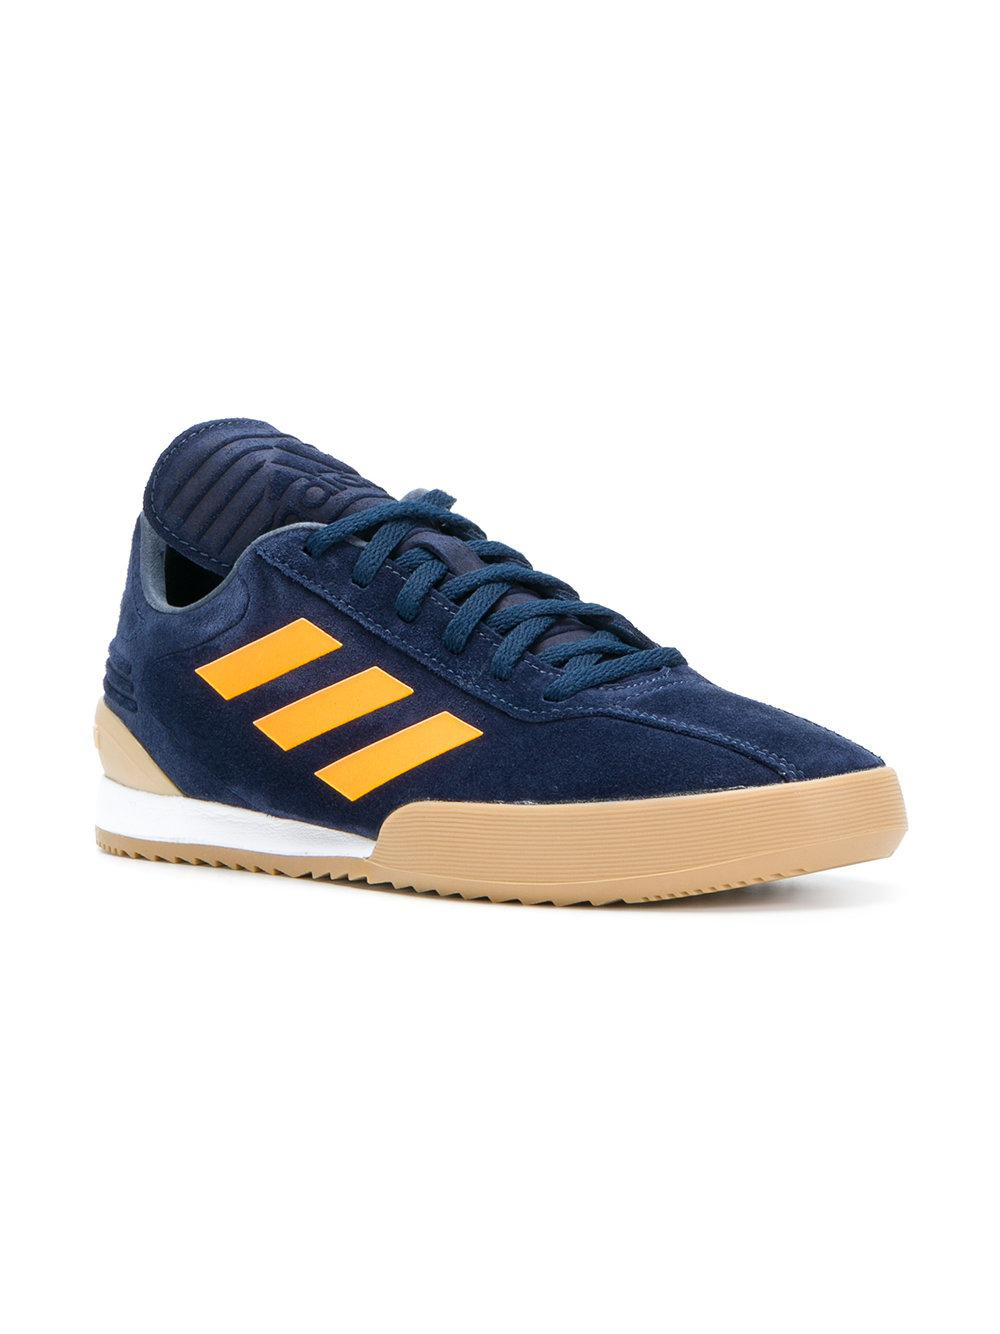 new arrival 9cae2 443bf Lyst - Gosha Rubchinskiy X Adidas Side Stripe Sneakers in Blue for Men -  Save 70%